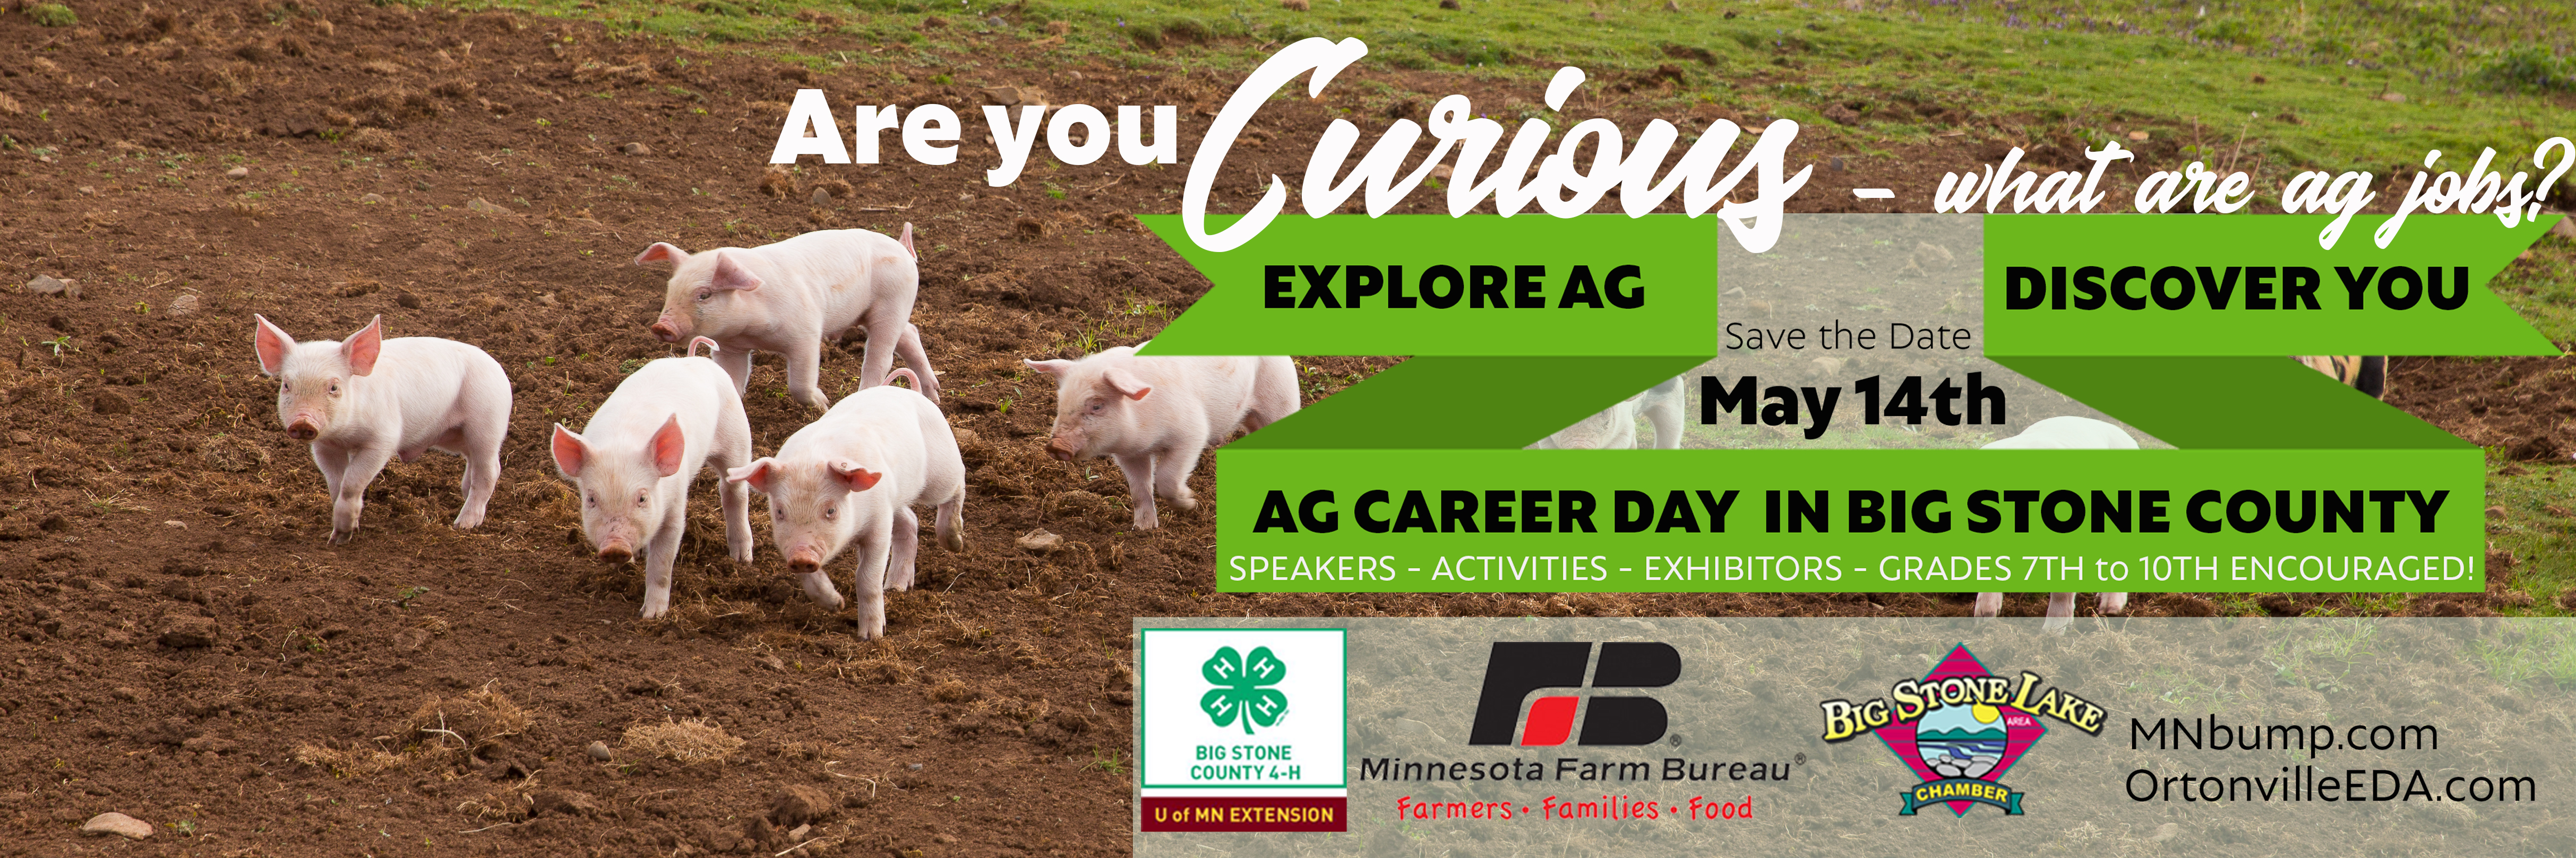 Ag Career Day in Big Stone County